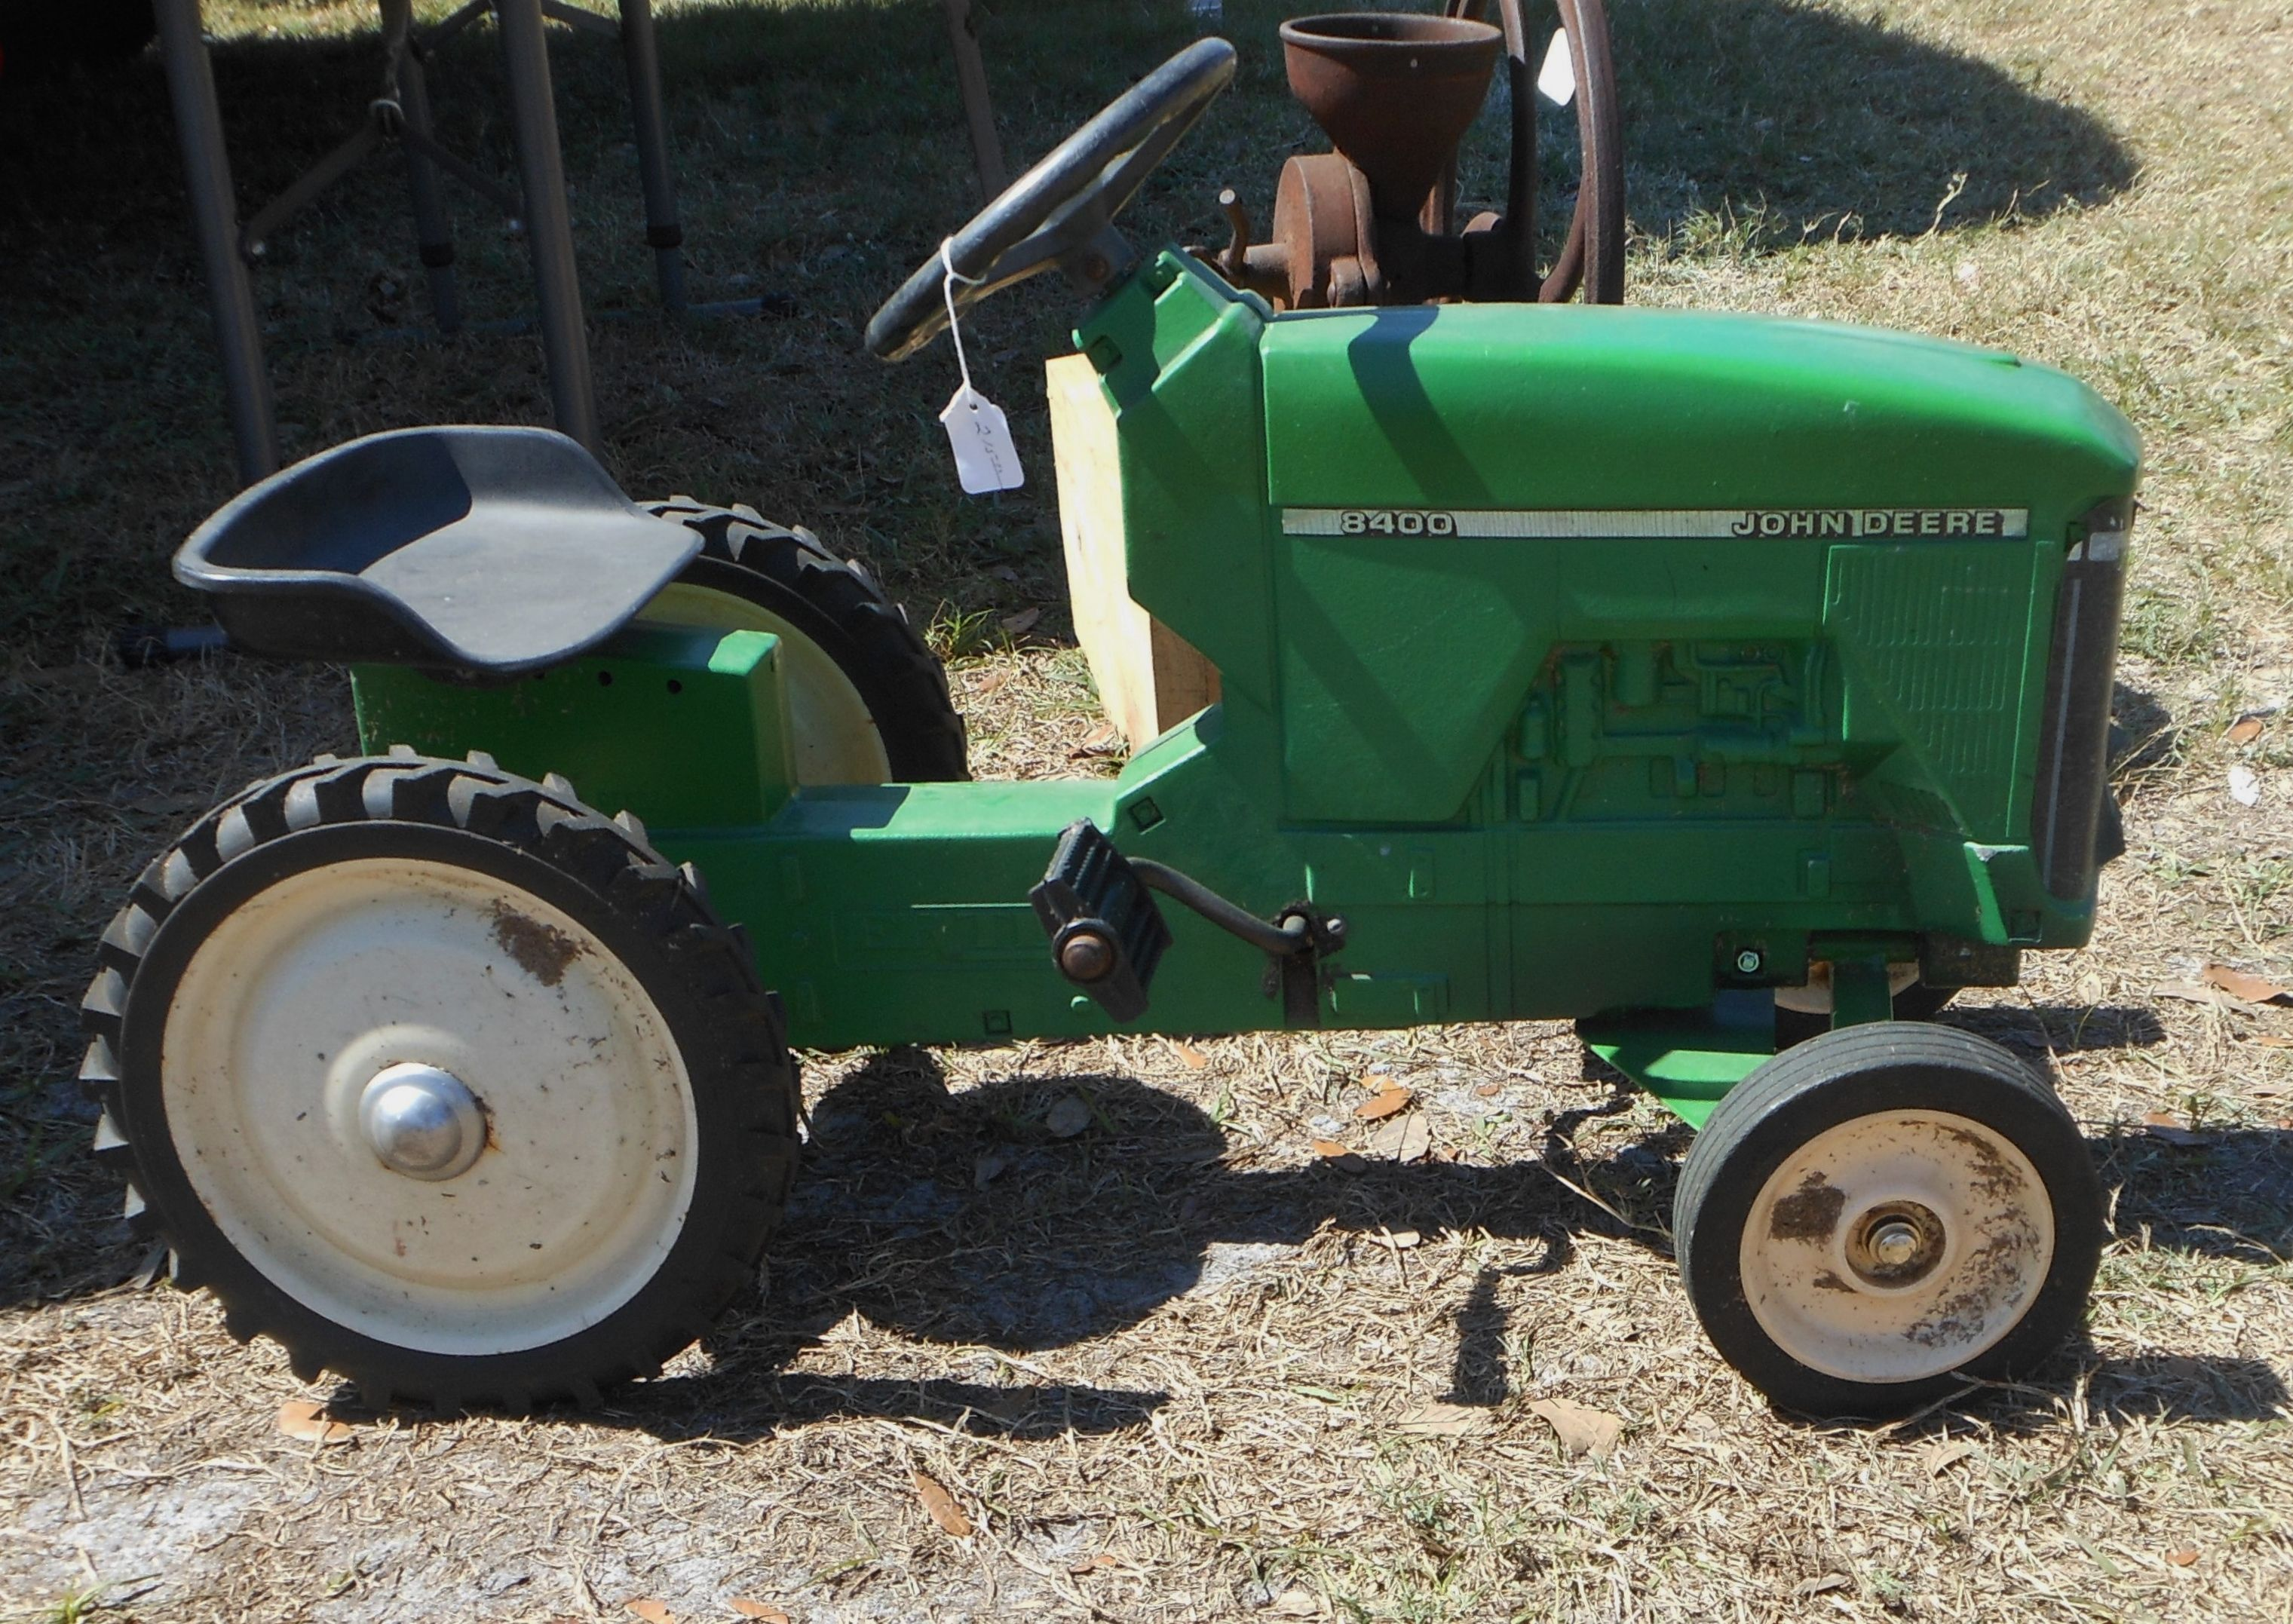 Are vintage pedal tractors interesting